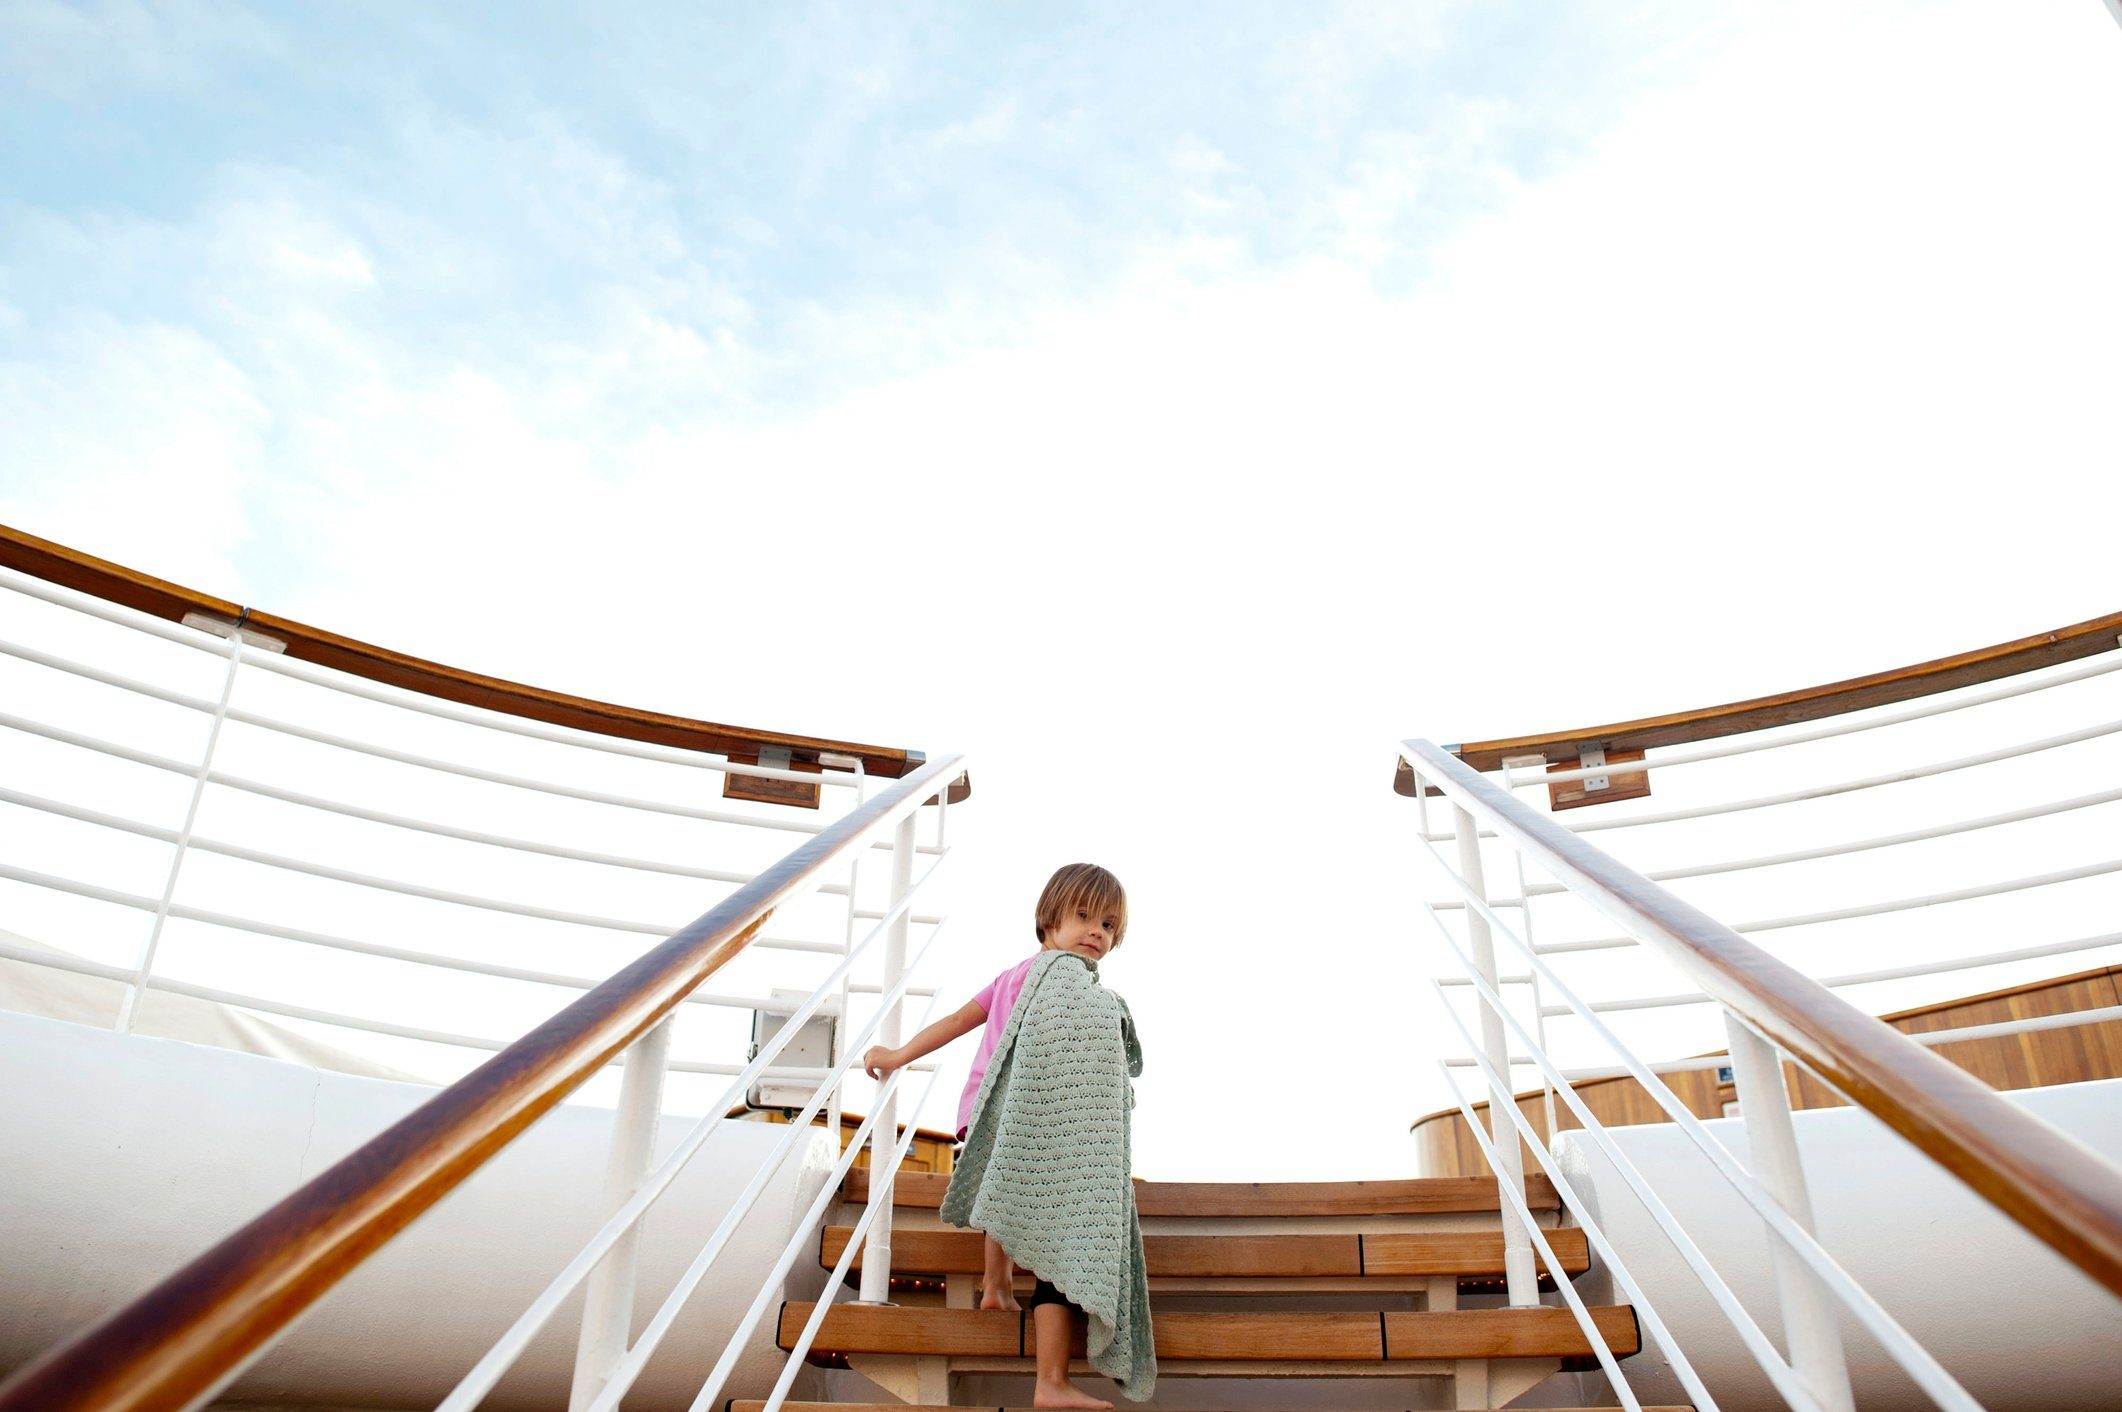 Low angle view of girl climbing steps in cruise ship against sky